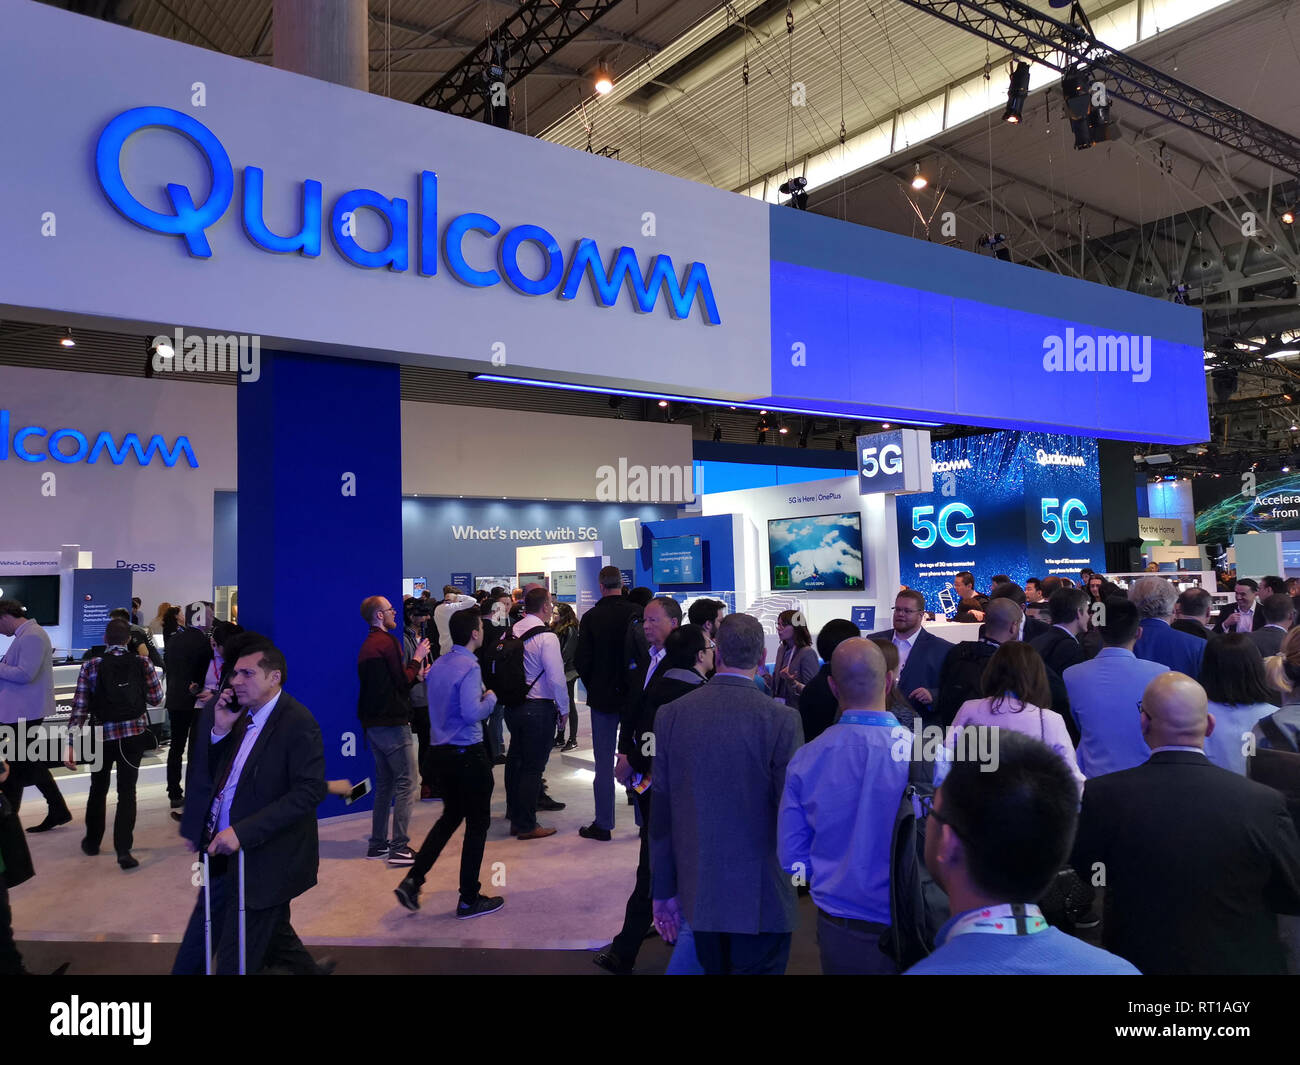 Barcelona, Spain  26th February, 2019  Qualcomm stand and a